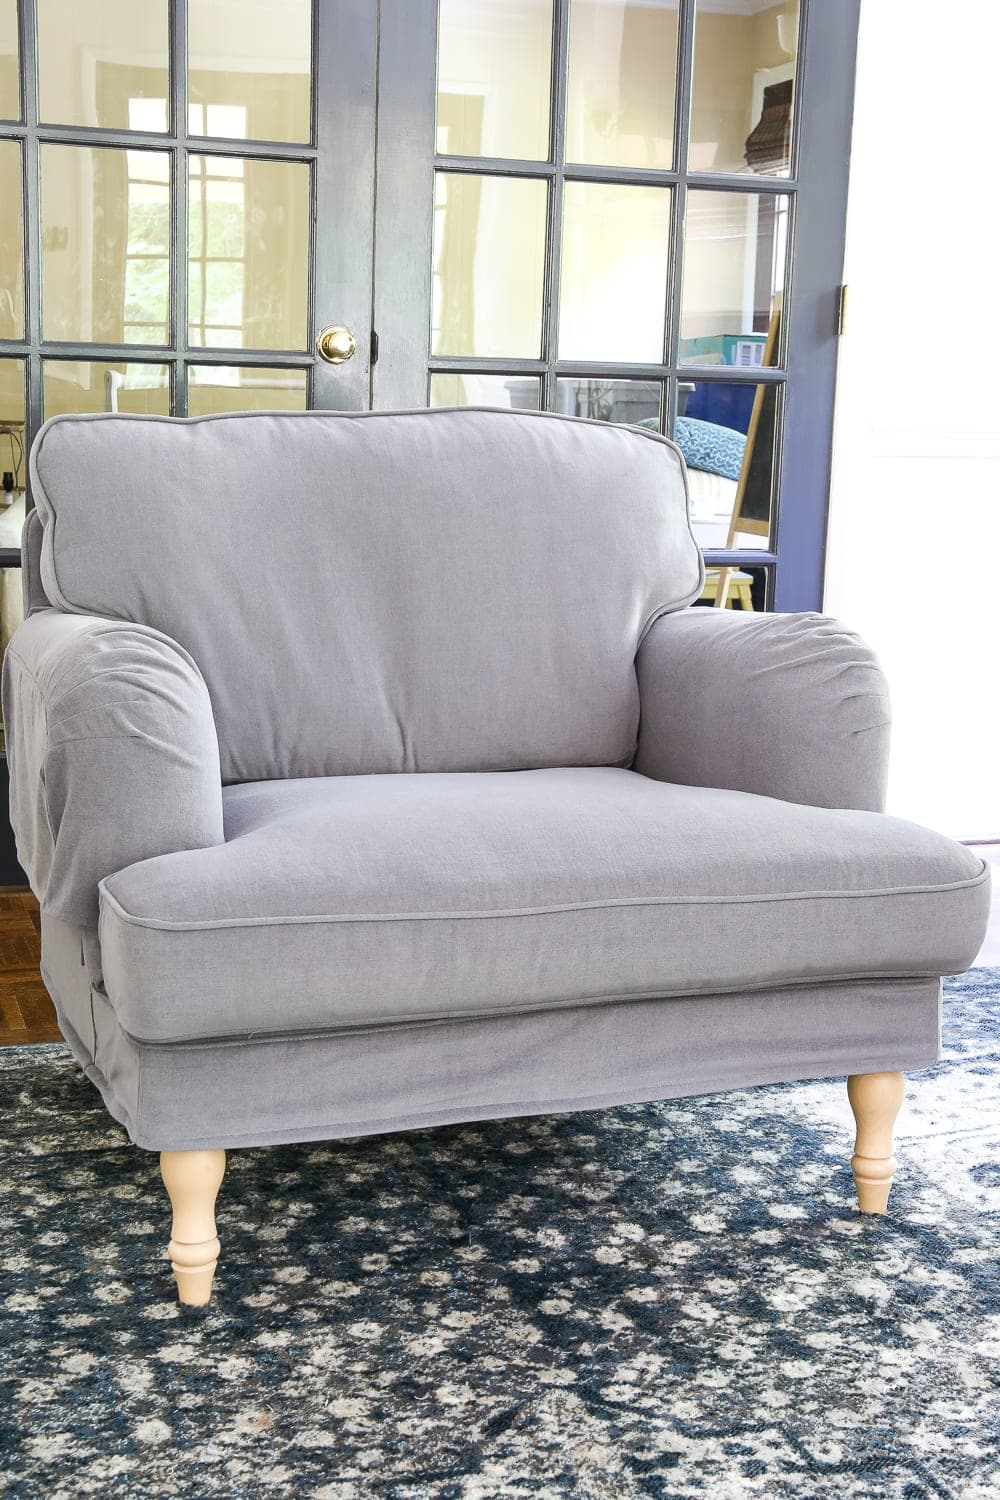 ikea 39 s new sofa and chairs and how to keep them clean